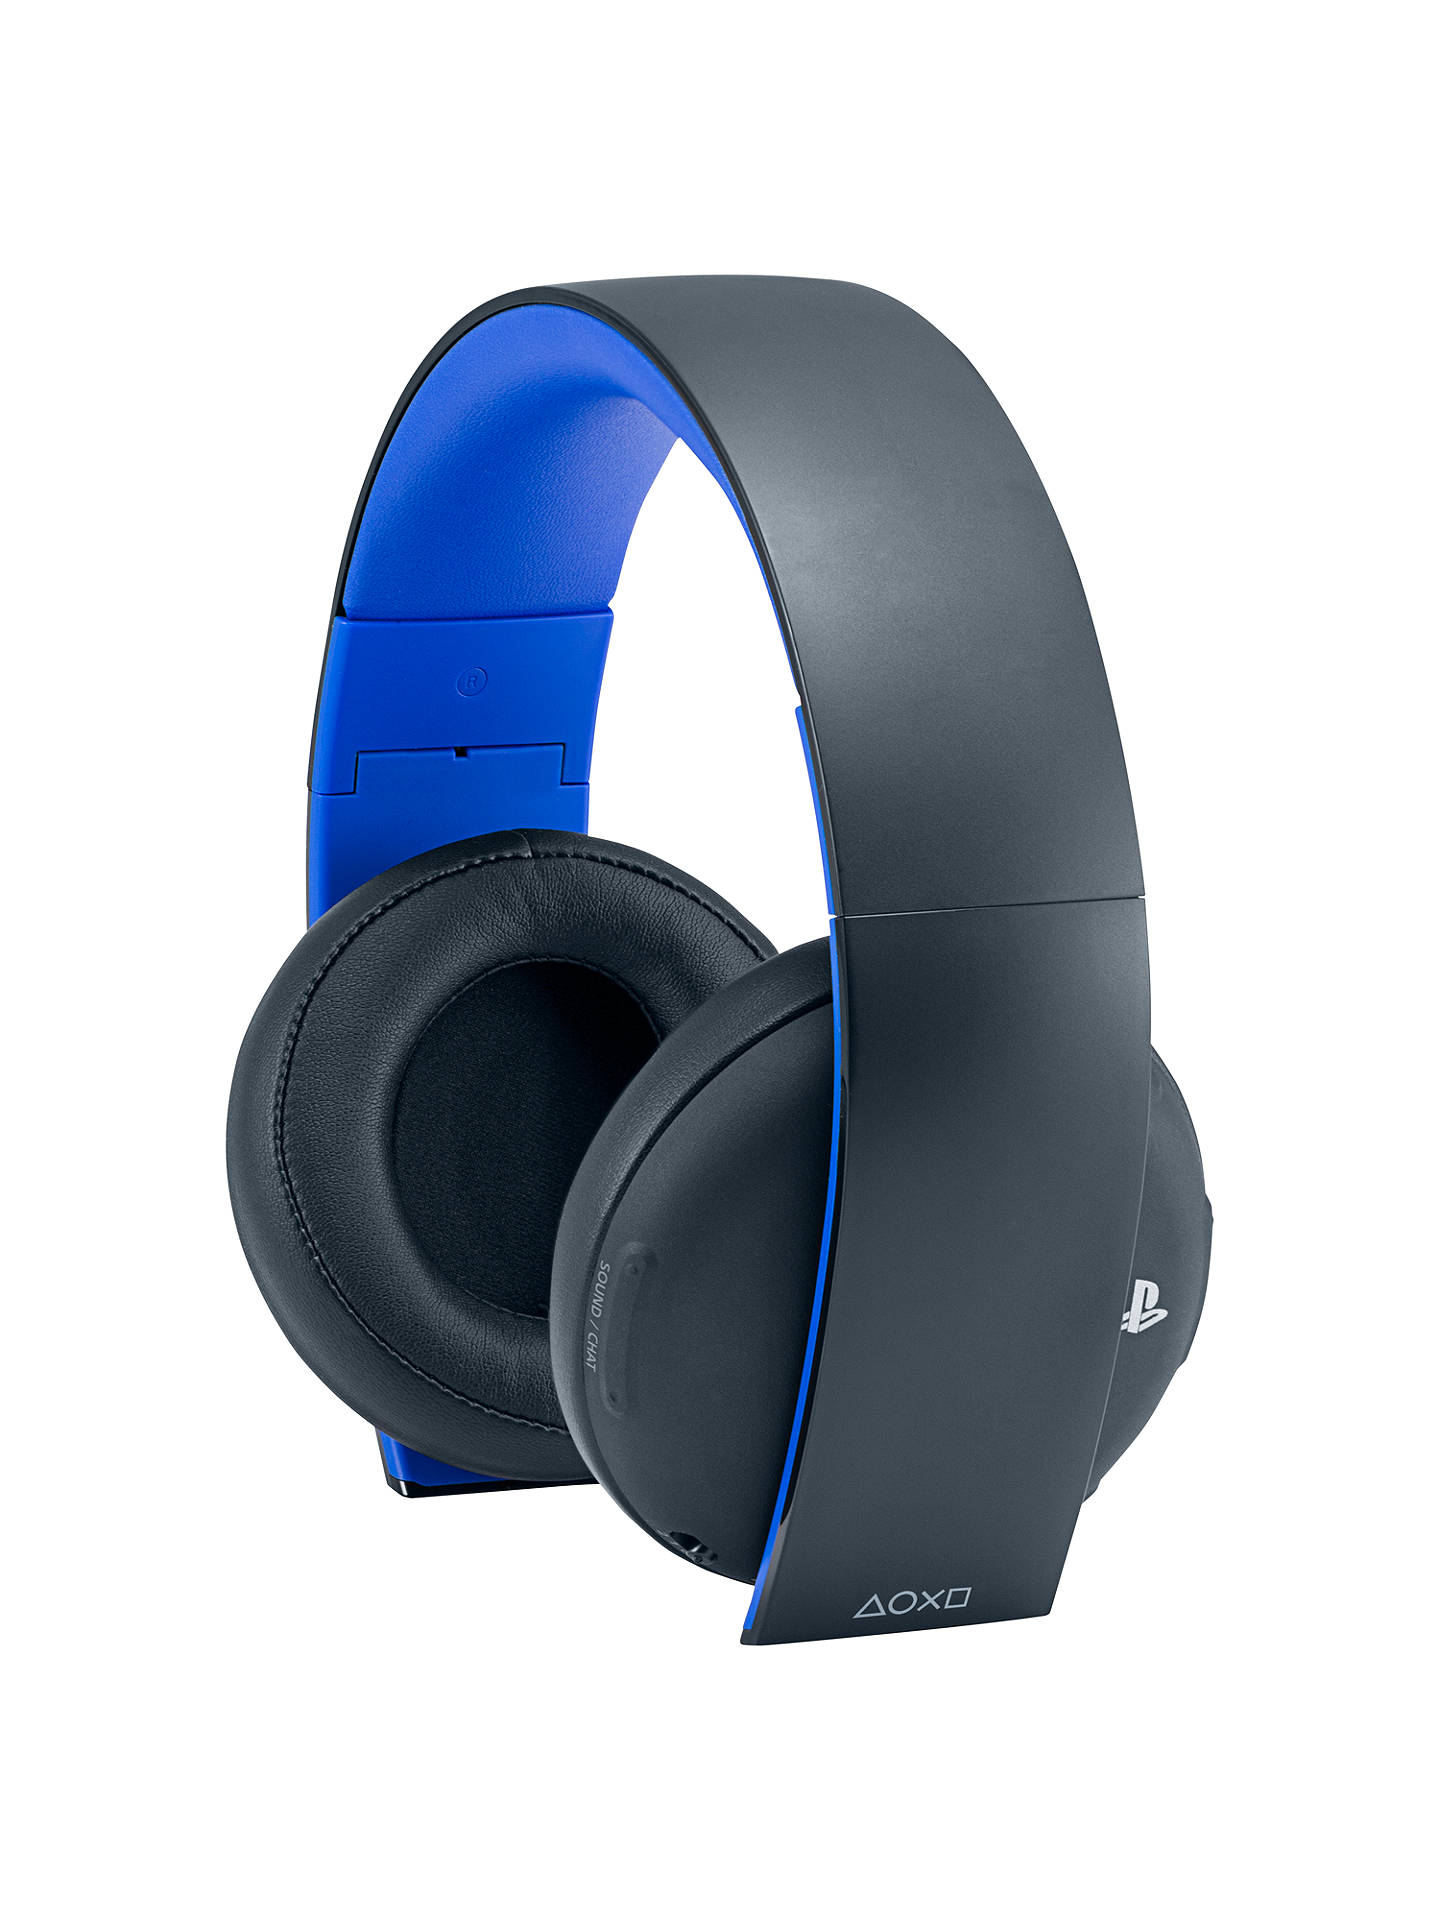 sony playstation wireless stereo headset 2 0 ps3 ps4 at. Black Bedroom Furniture Sets. Home Design Ideas